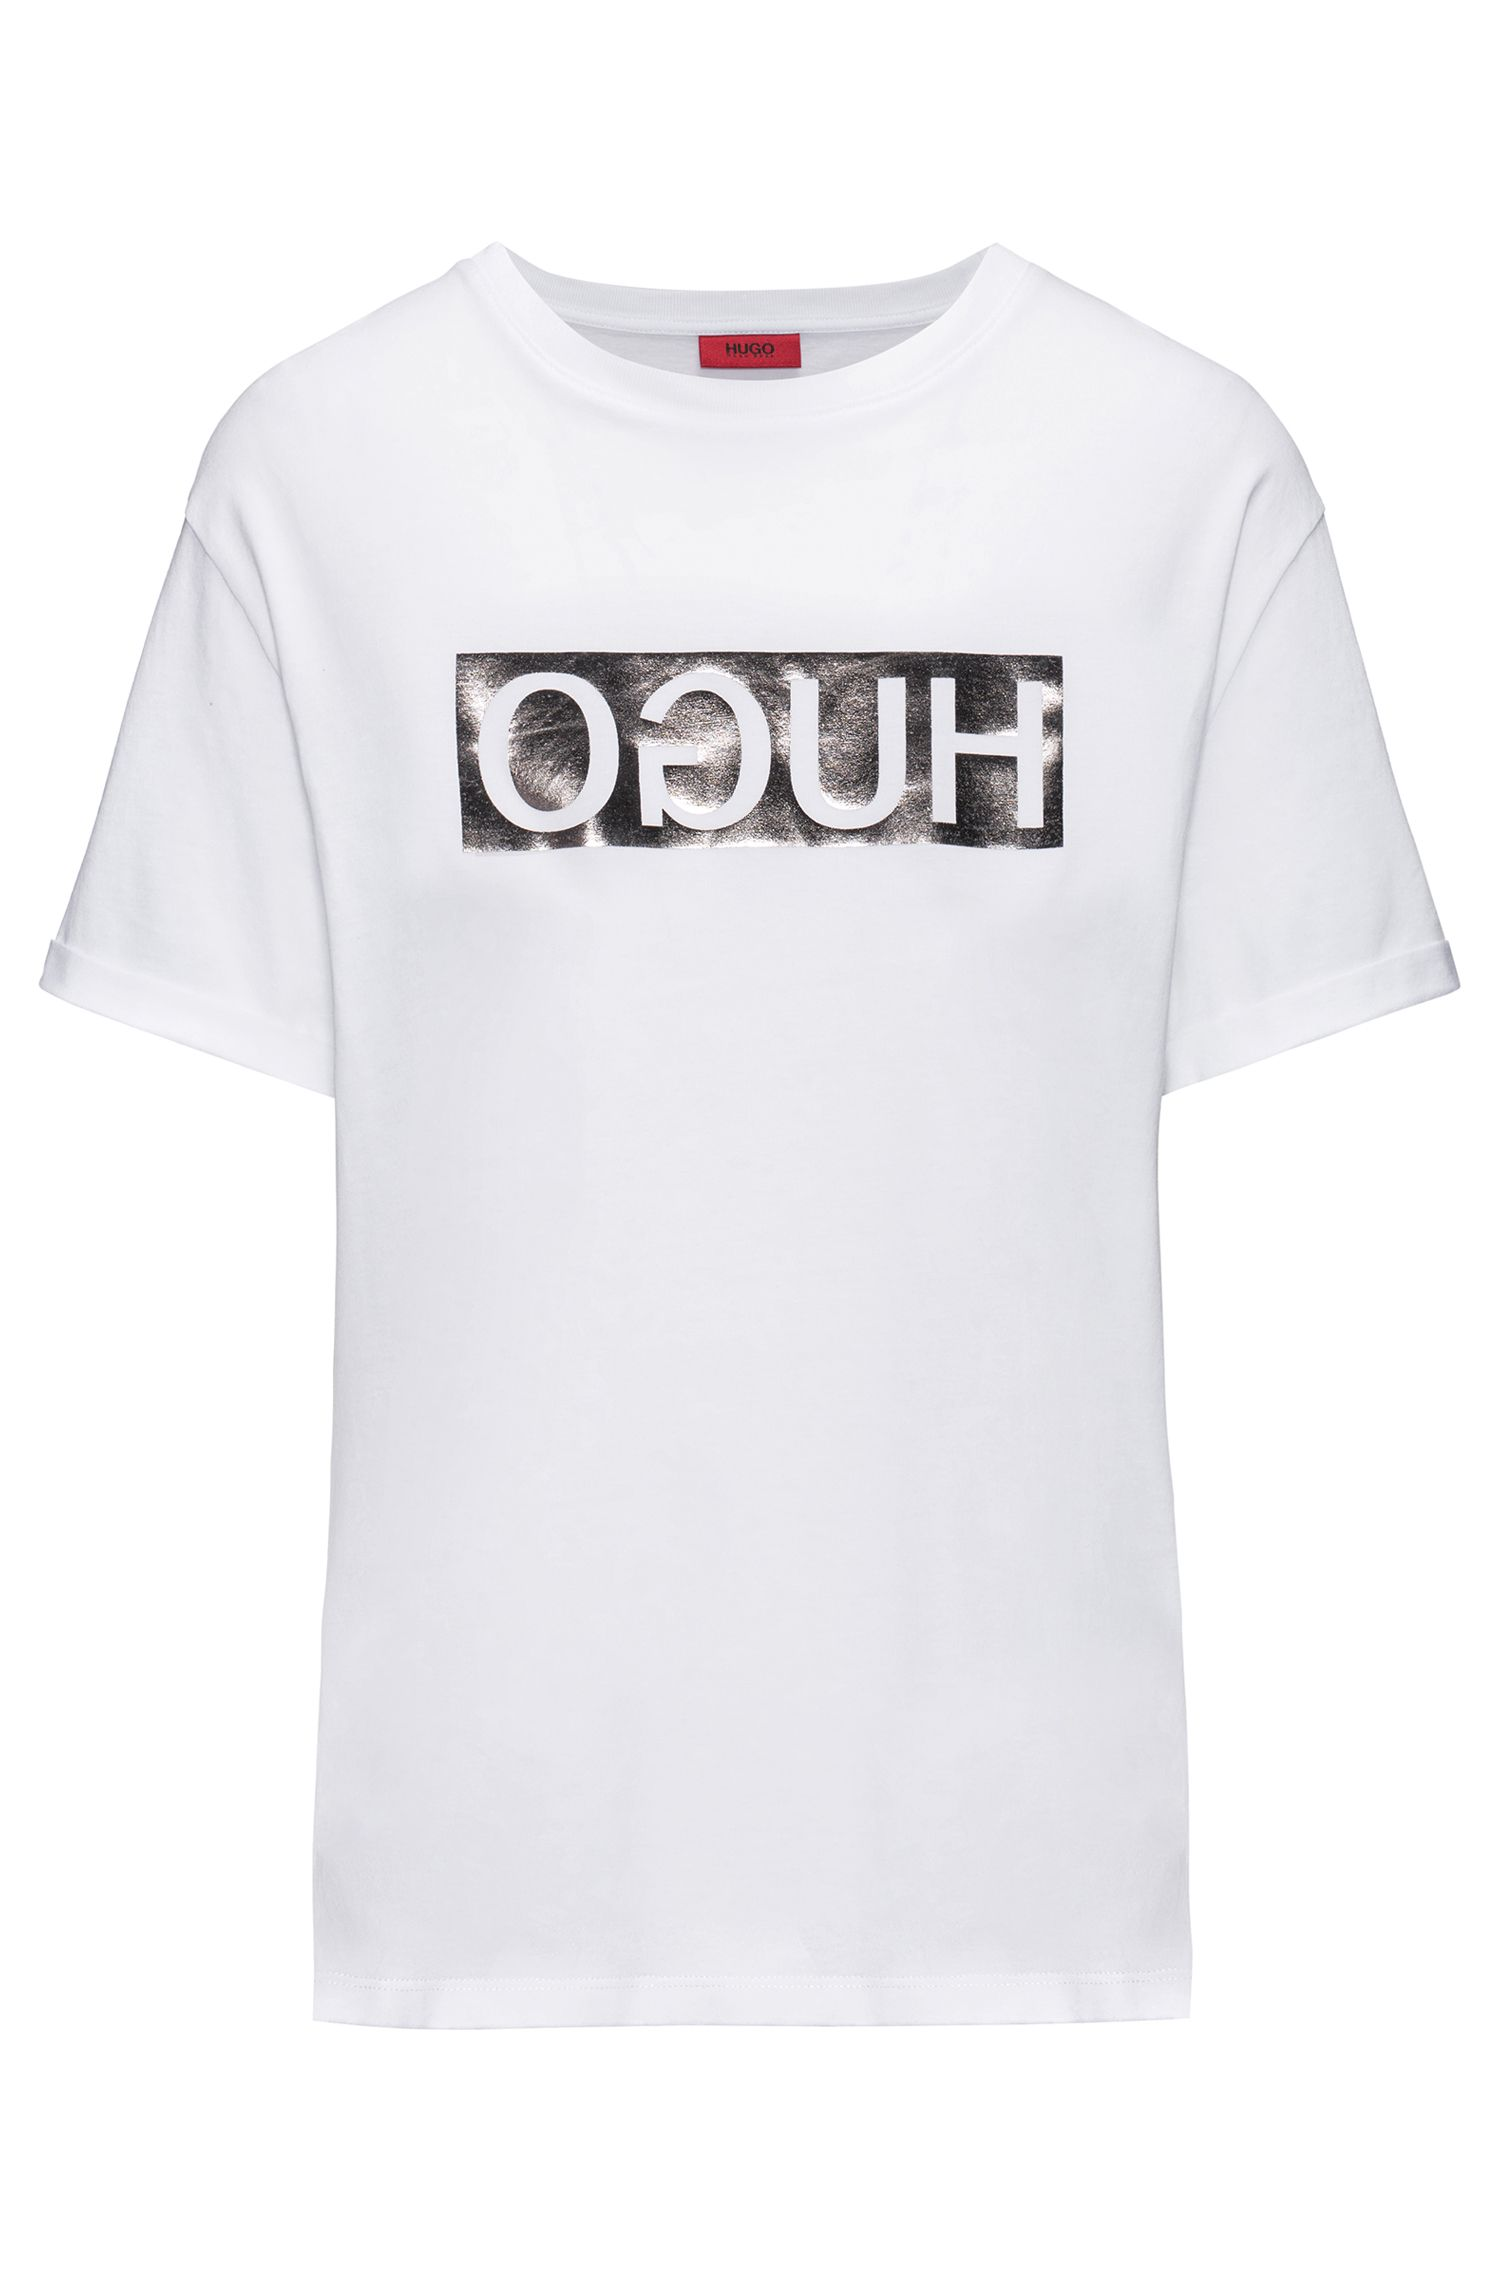 Reverse logo cotton jersey T-shirt in a relaxed fit